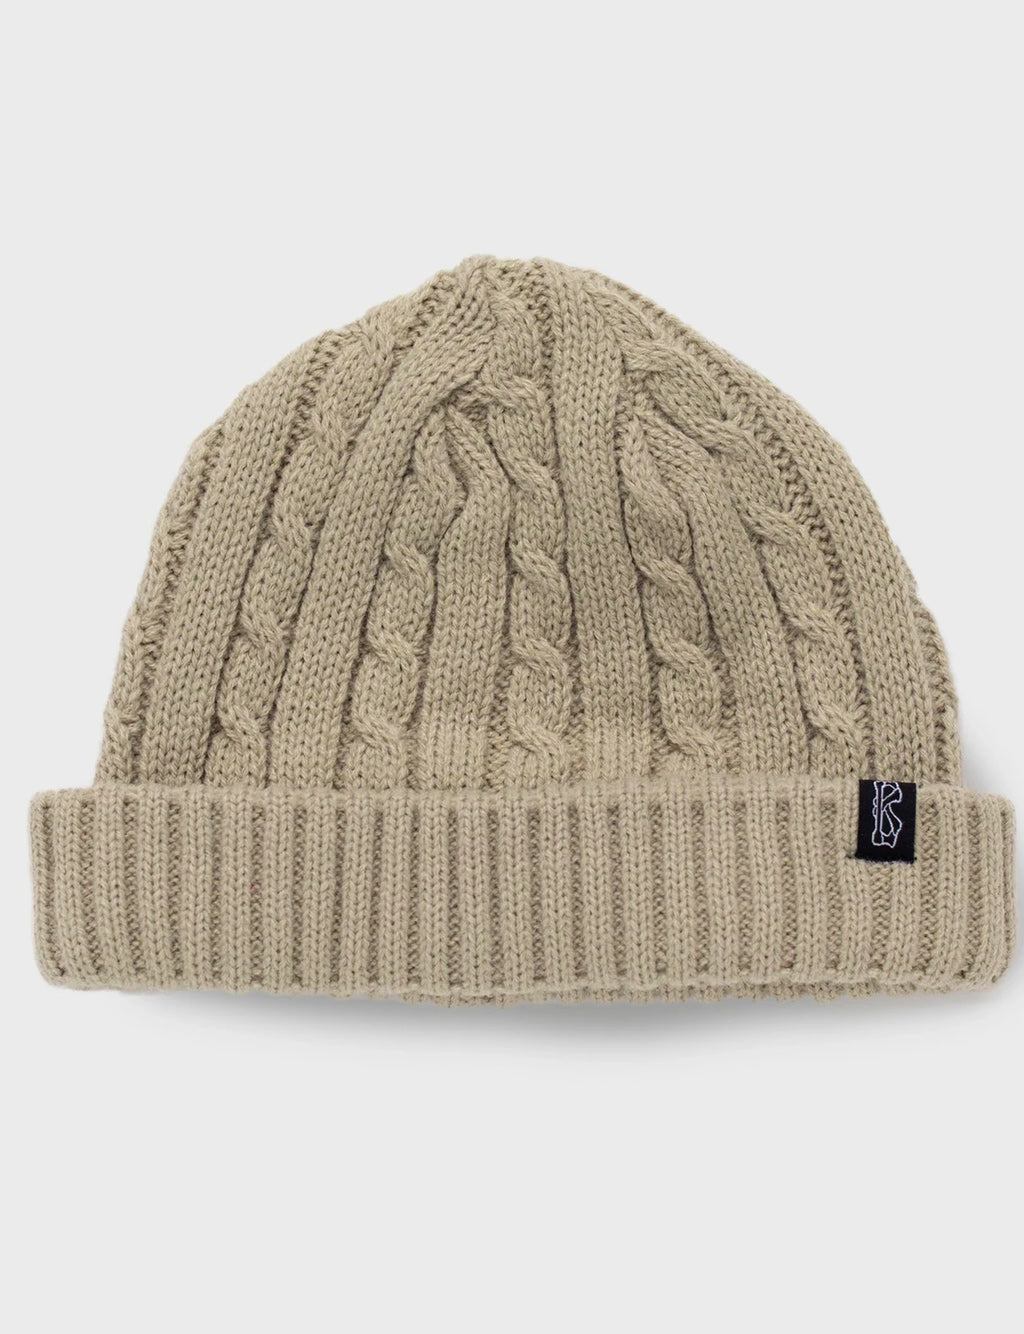 Fisherman Knit Beanie - Vanilla Cream